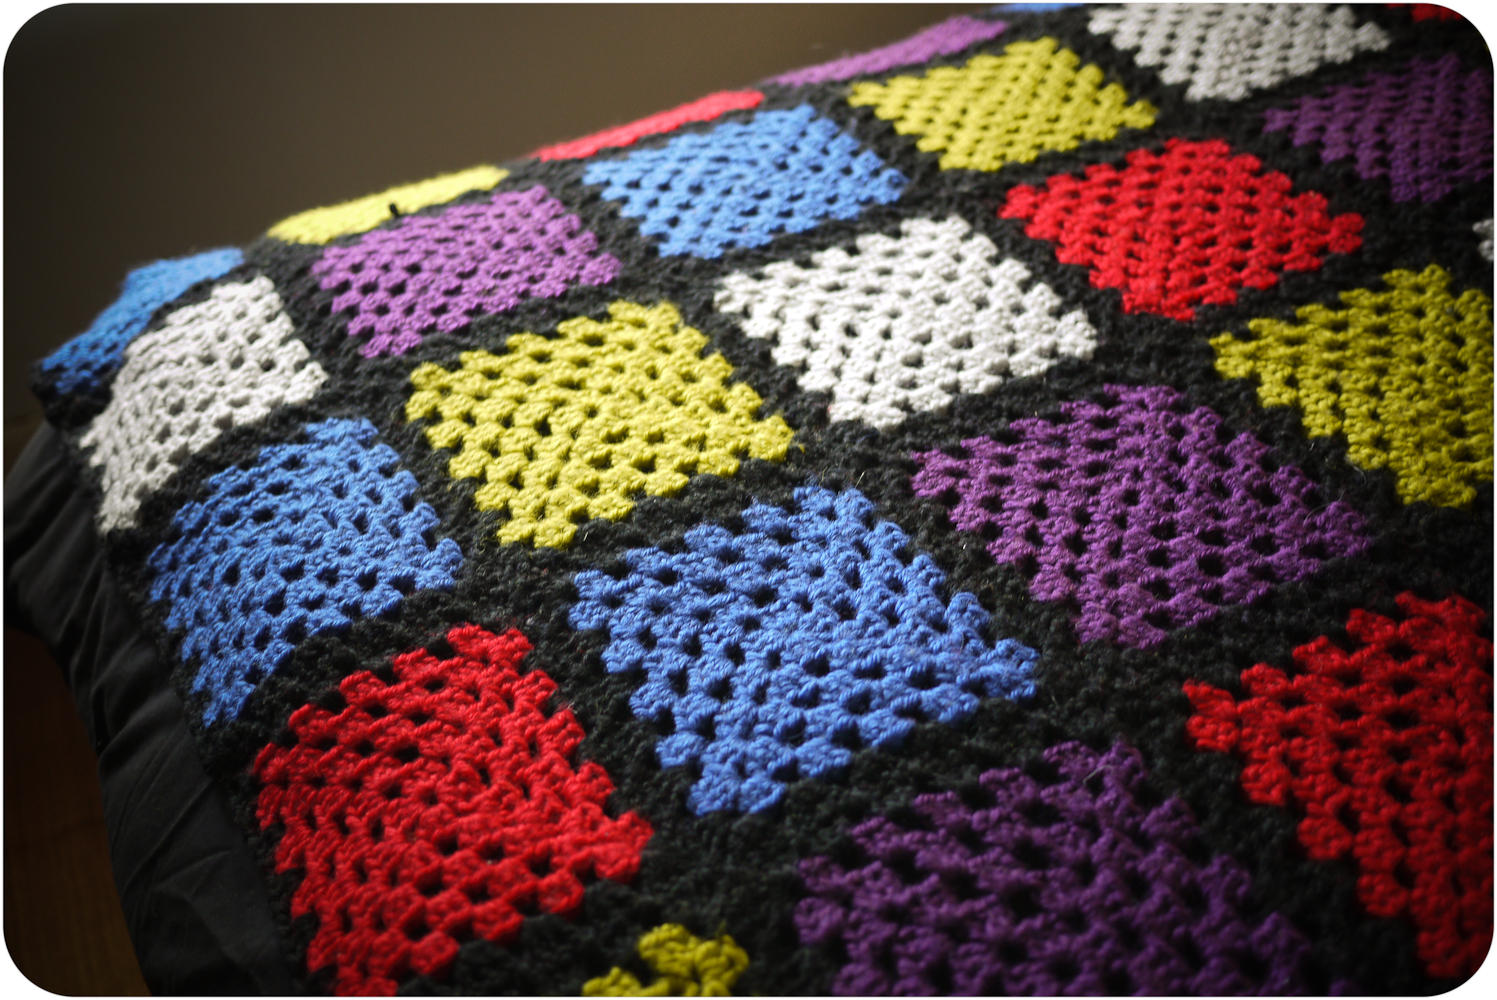 Crocheting Squares : Square Crochet Blanket - Crochet Club